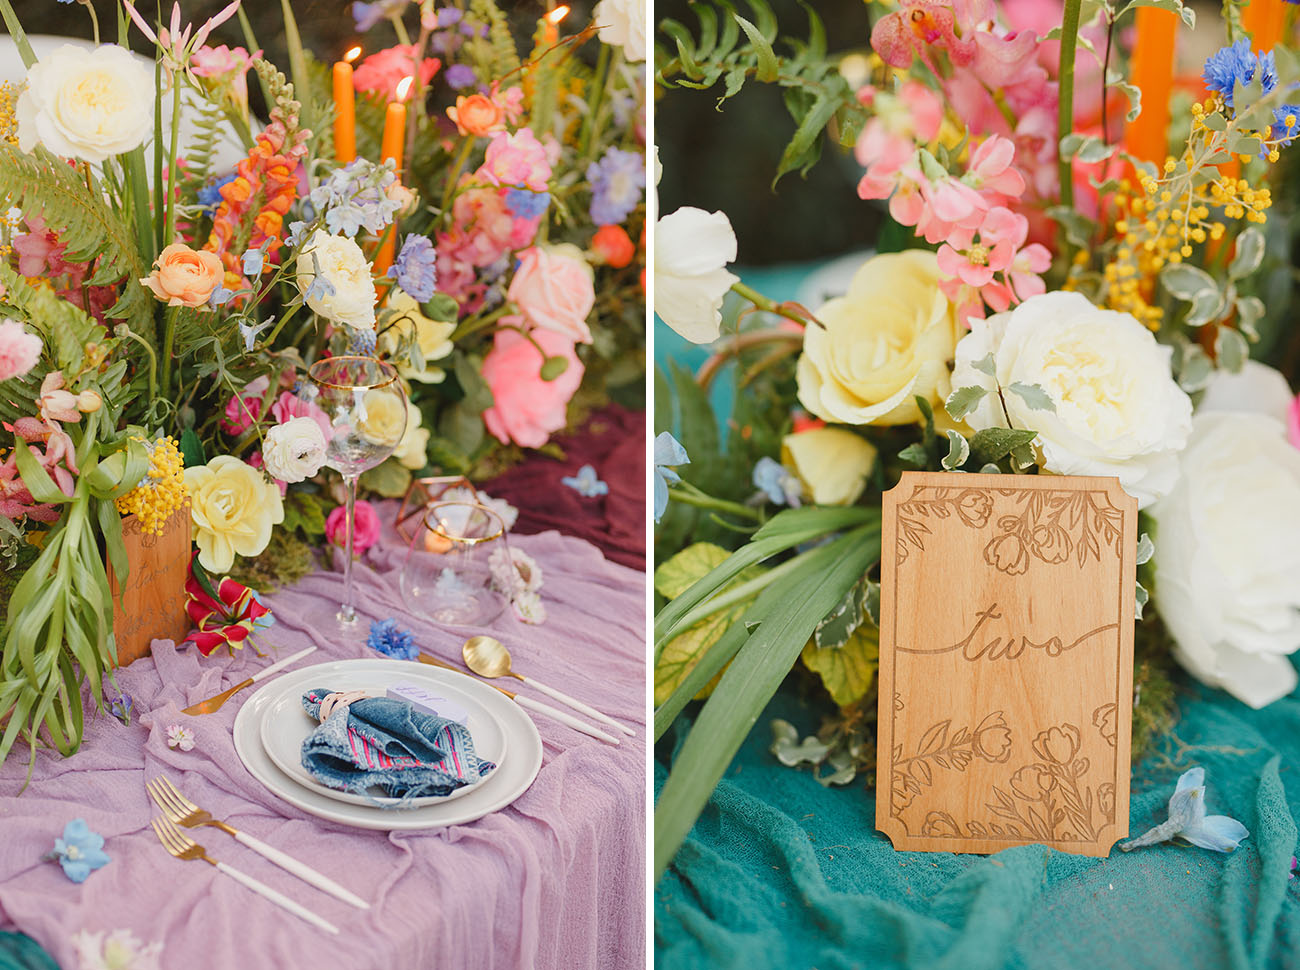 Amazon Handmade Wedding Inspiration